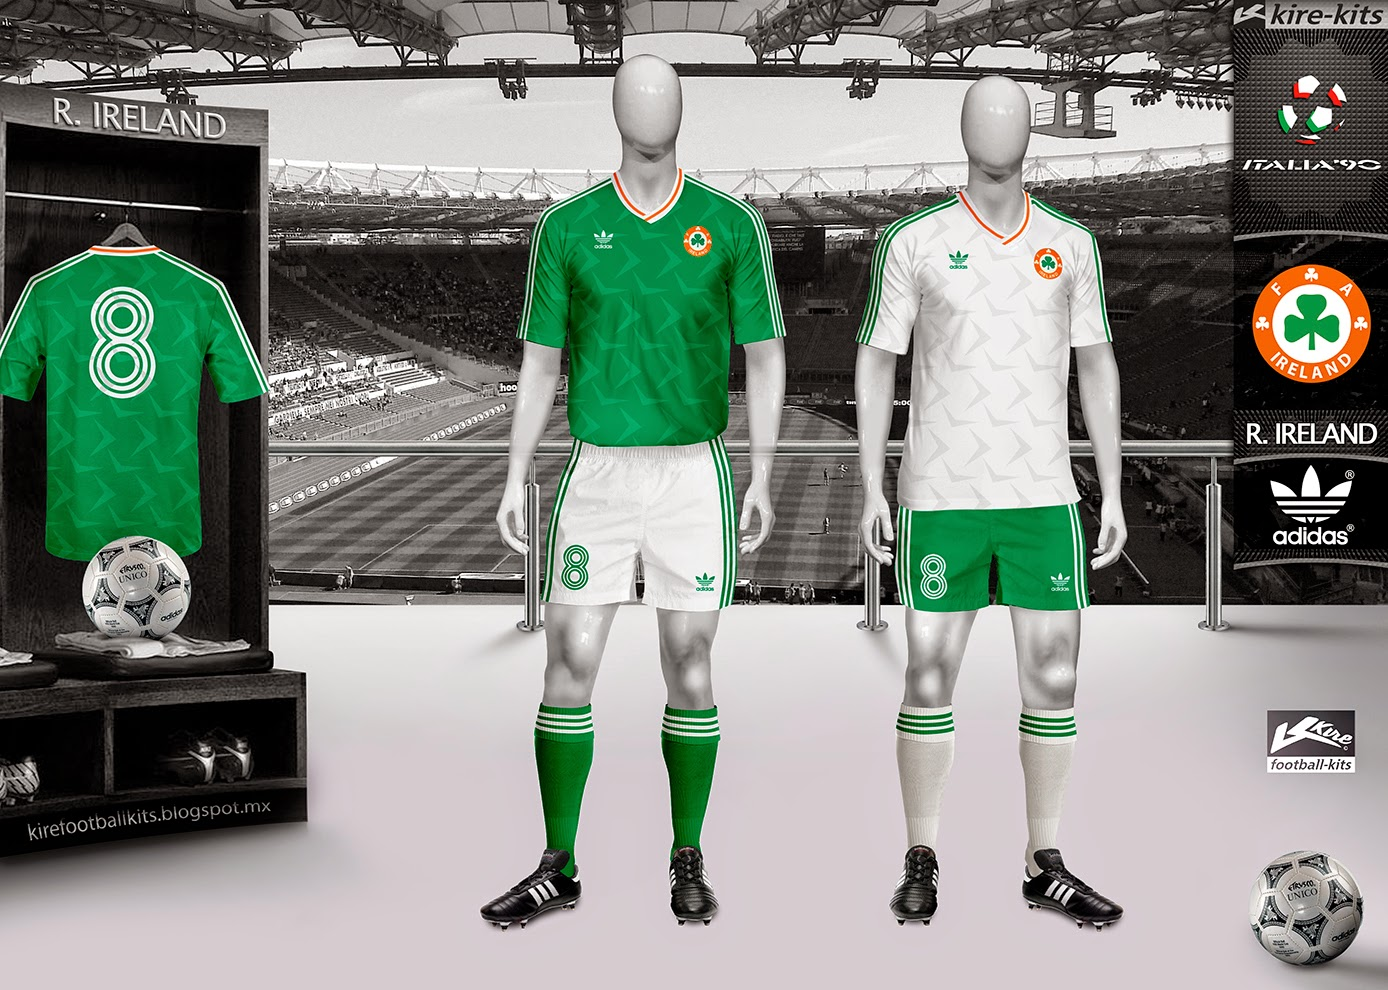 Ireland Home and Away Kits World Cup Italy 1990